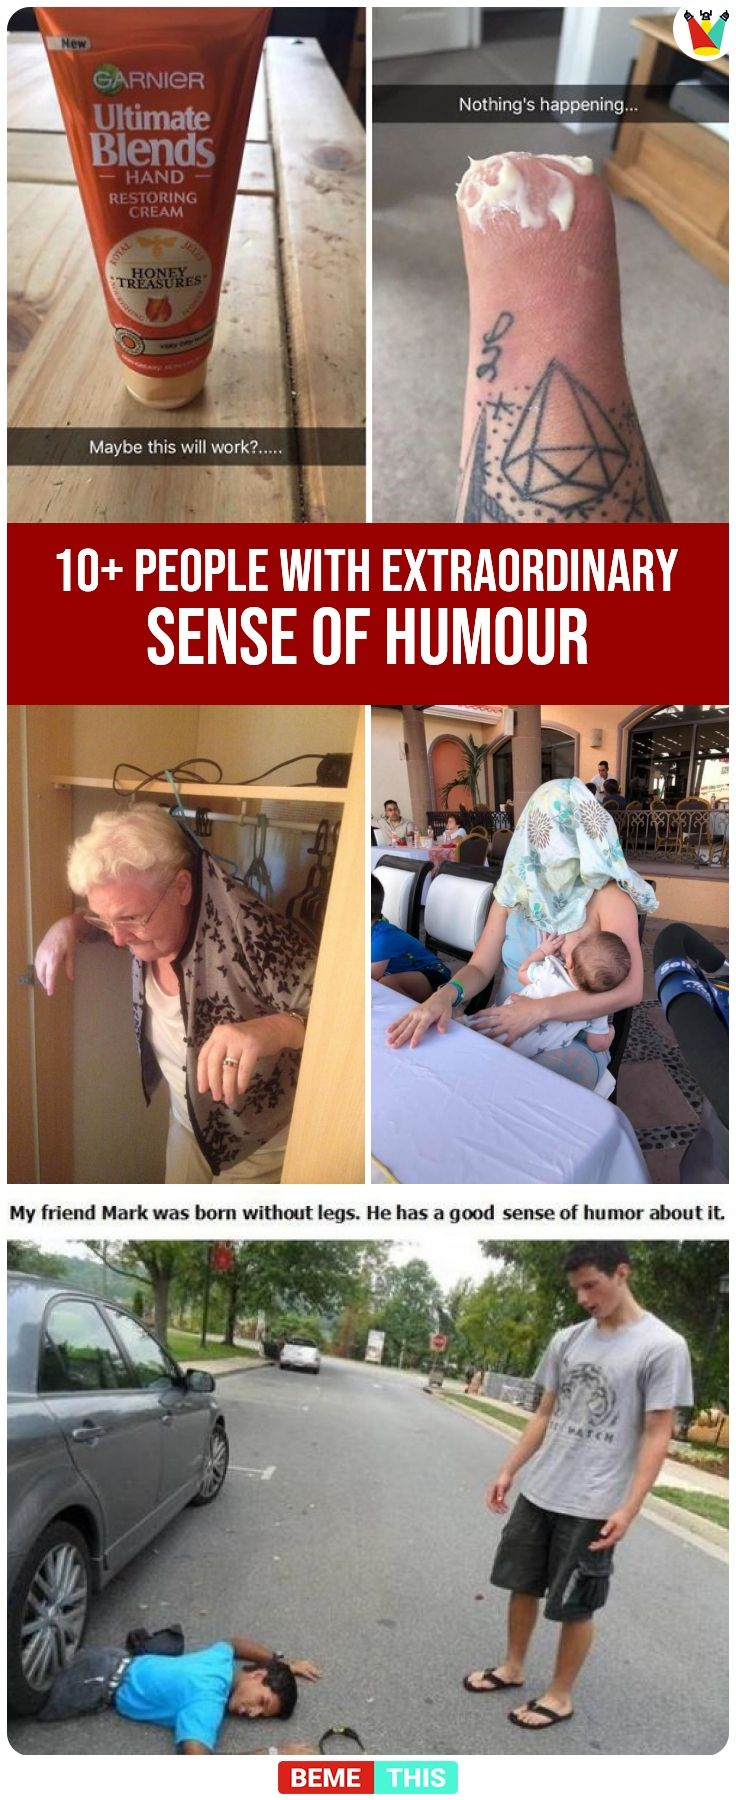 10 People With Extraordinary Sense Of Humour Senseofhumour Peoplearefunny Bemethis Cute Jokes Funny Movies For Kids Dog Quotes Funny